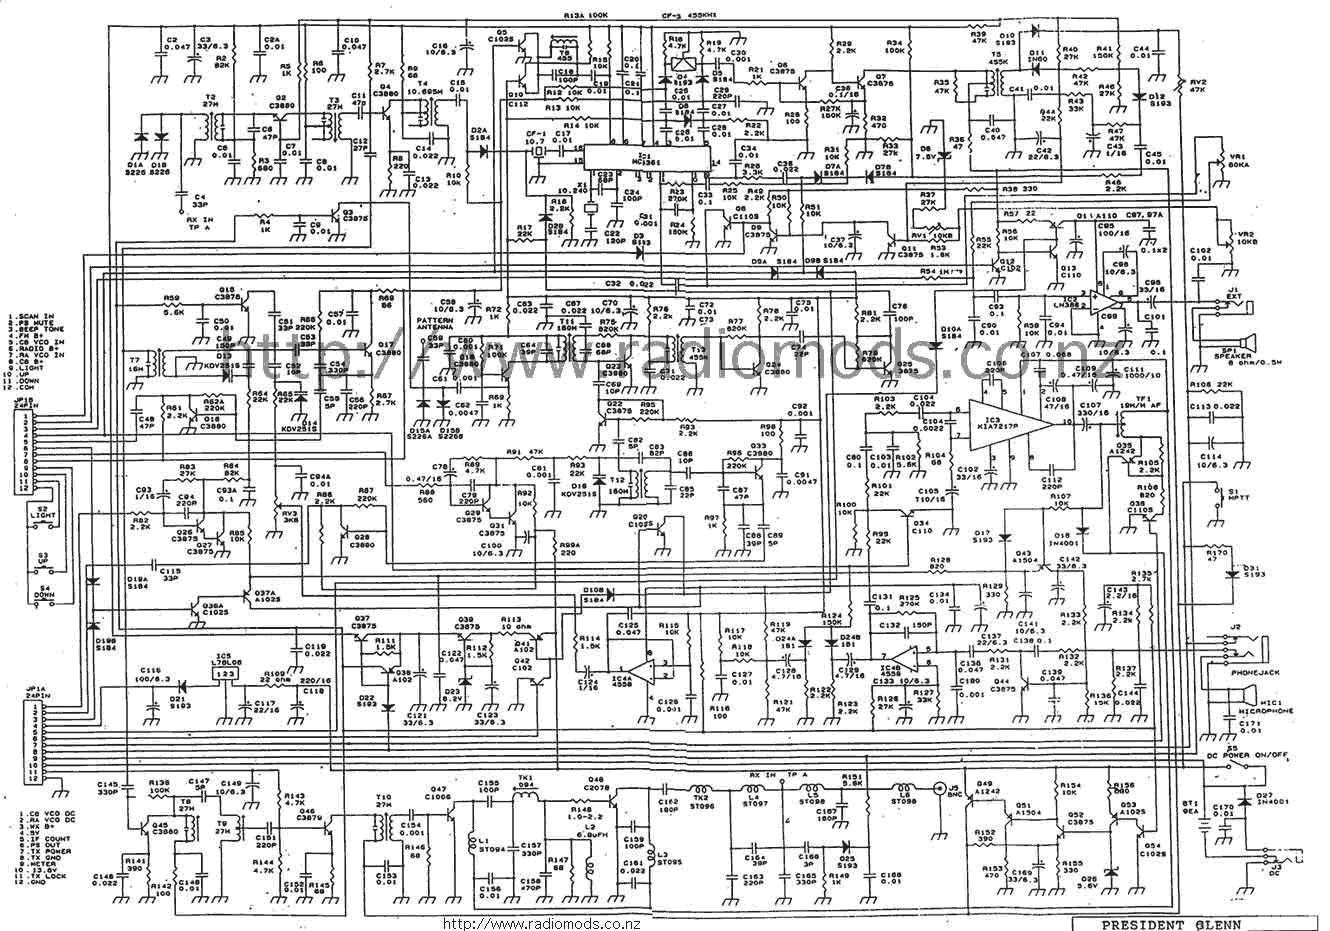 Go To the President Glenn Main PCB Circuit Diagram